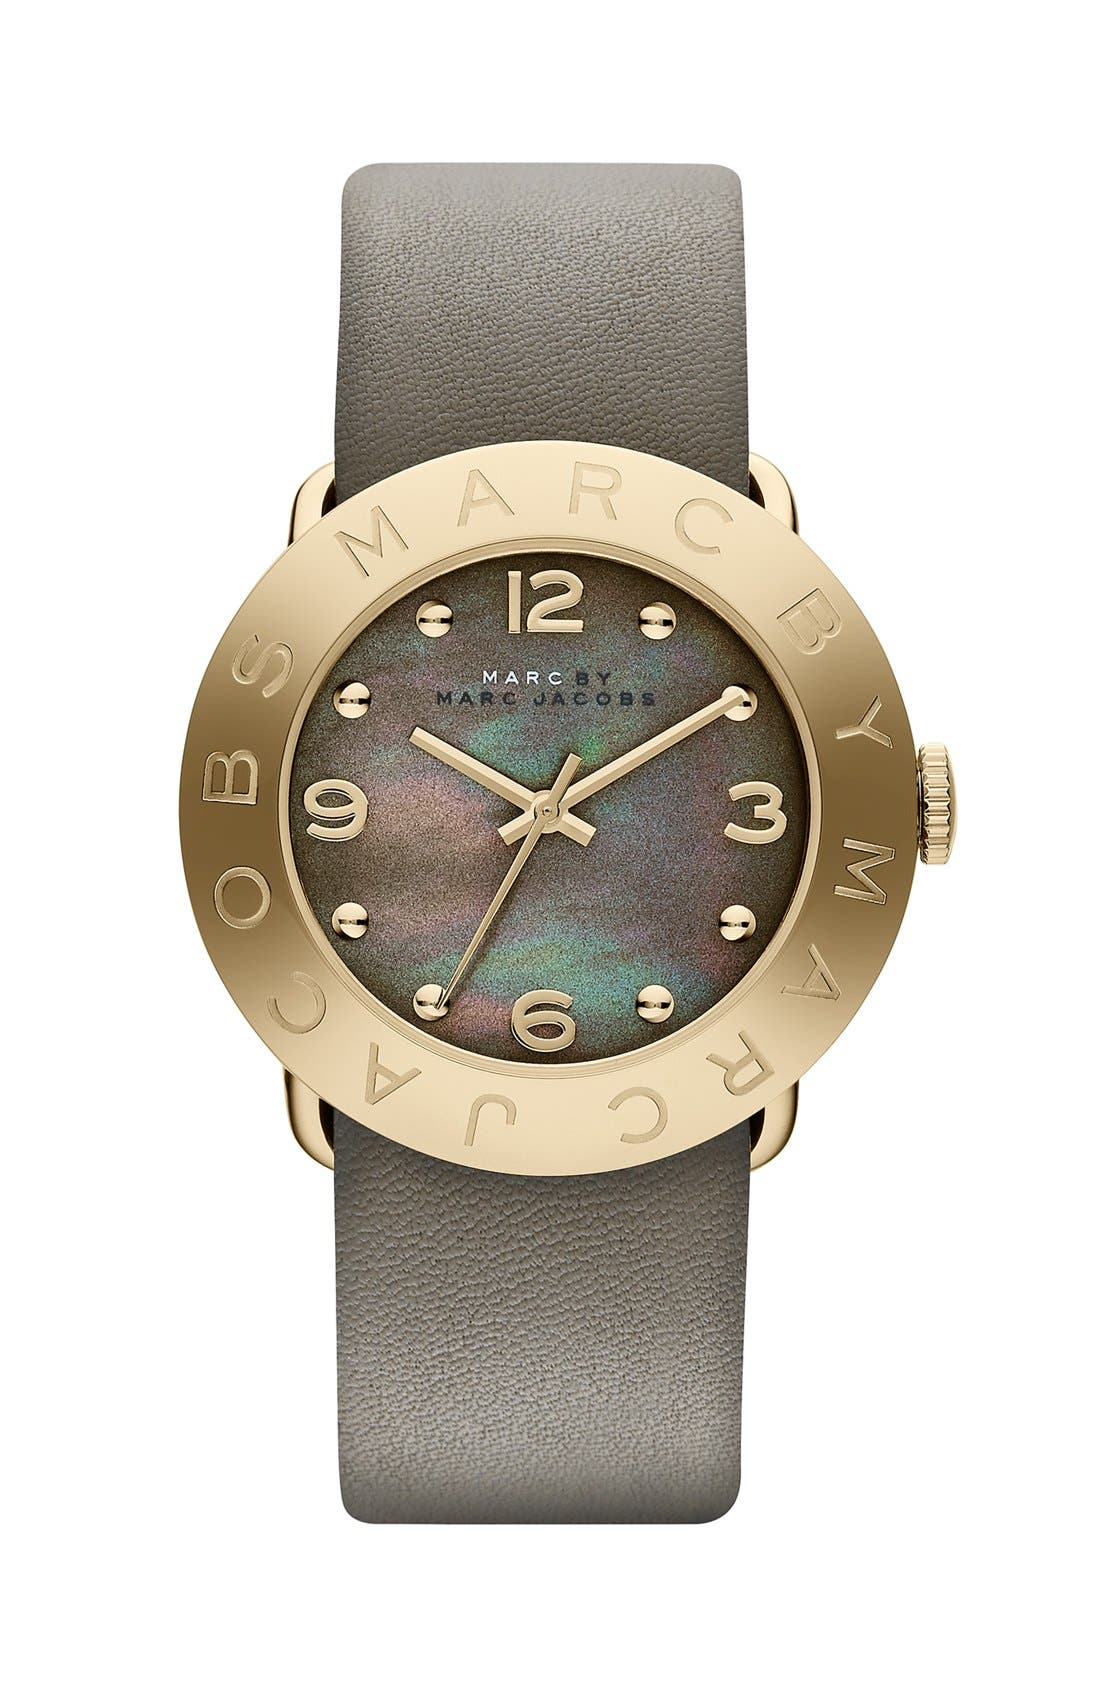 Alternate Image 1 Selected - MARC JACOBS 'Amy' Leather Strap Watch, 36mm